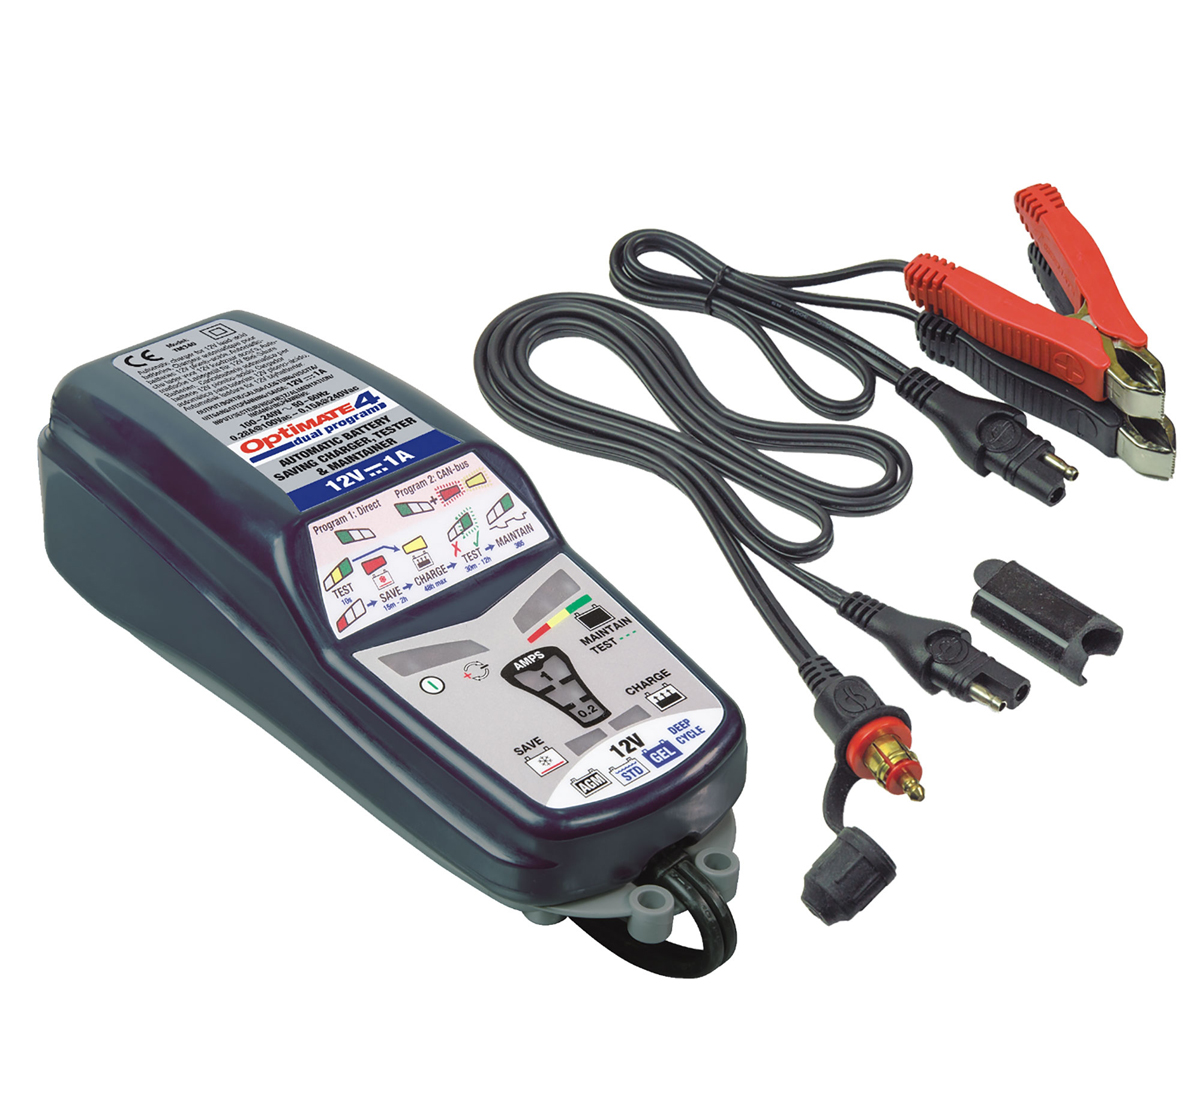 OptiMate 4D 12V Battery Charger CAN-bus TM-352